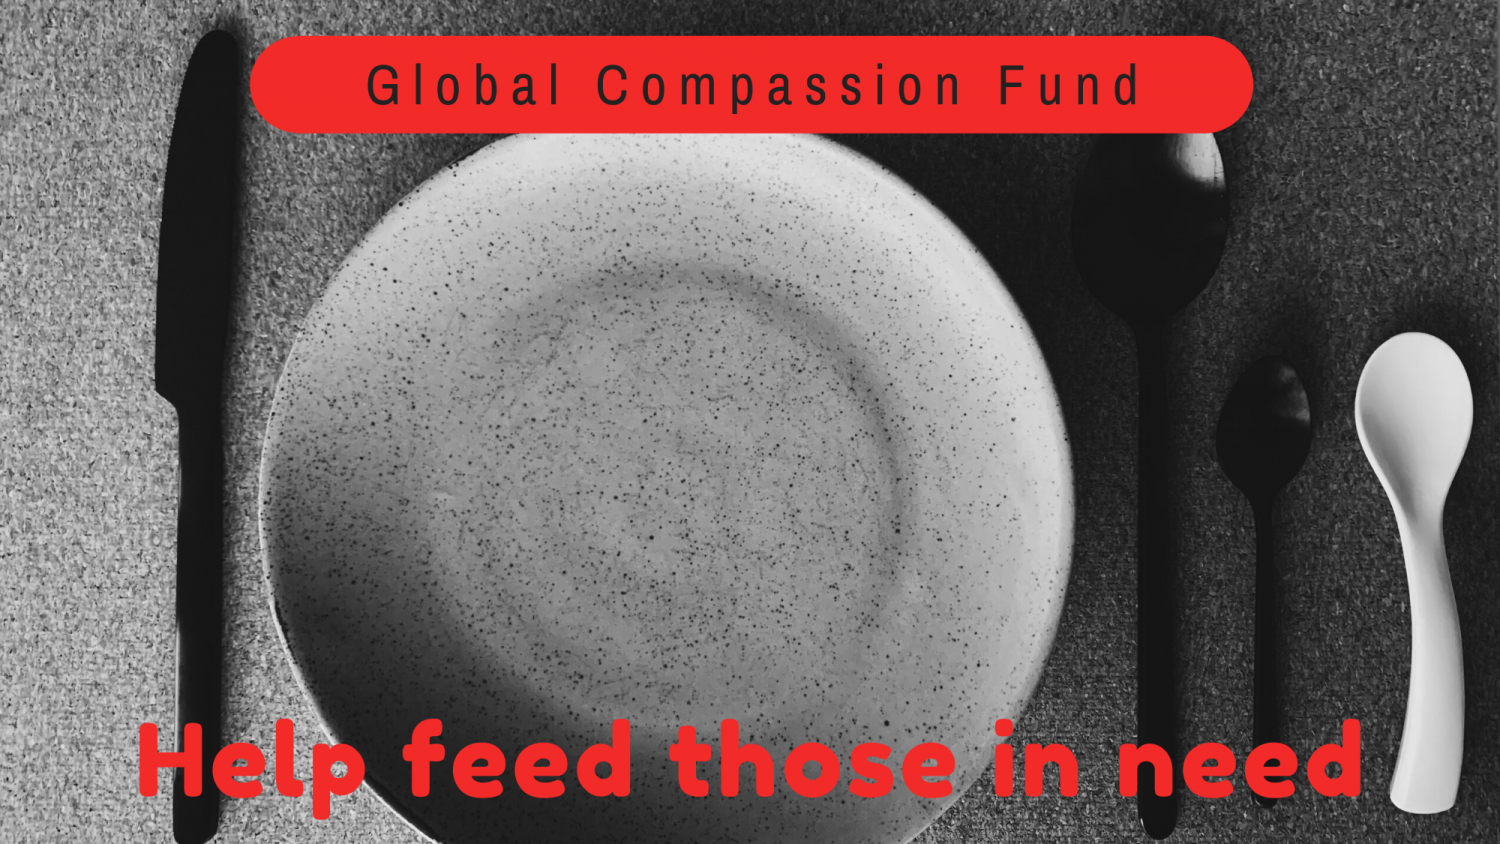 Feed those in need.